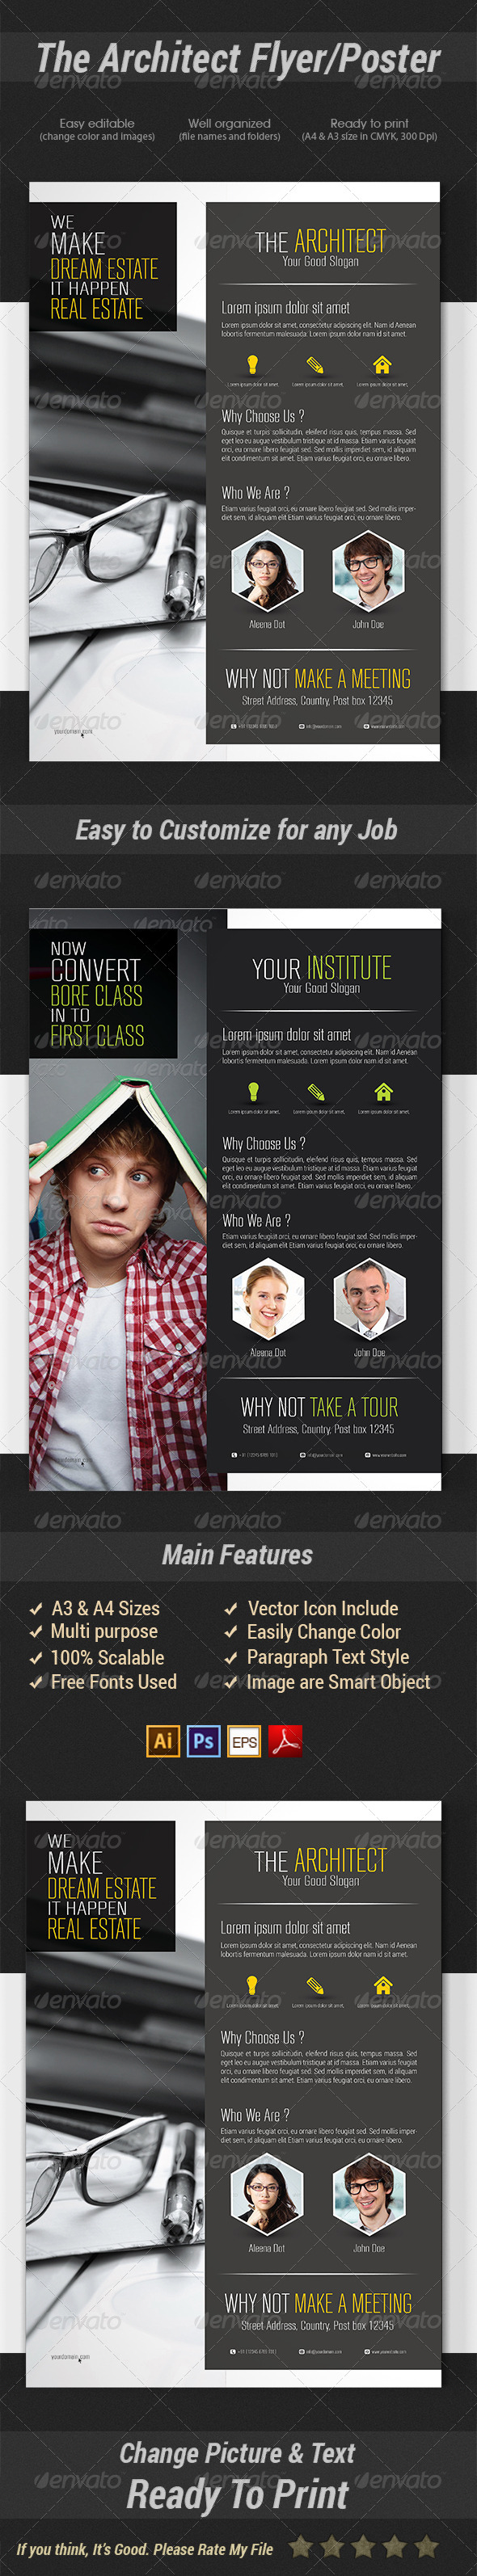 GraphicRiver The Architect Flyer Poster 7437056